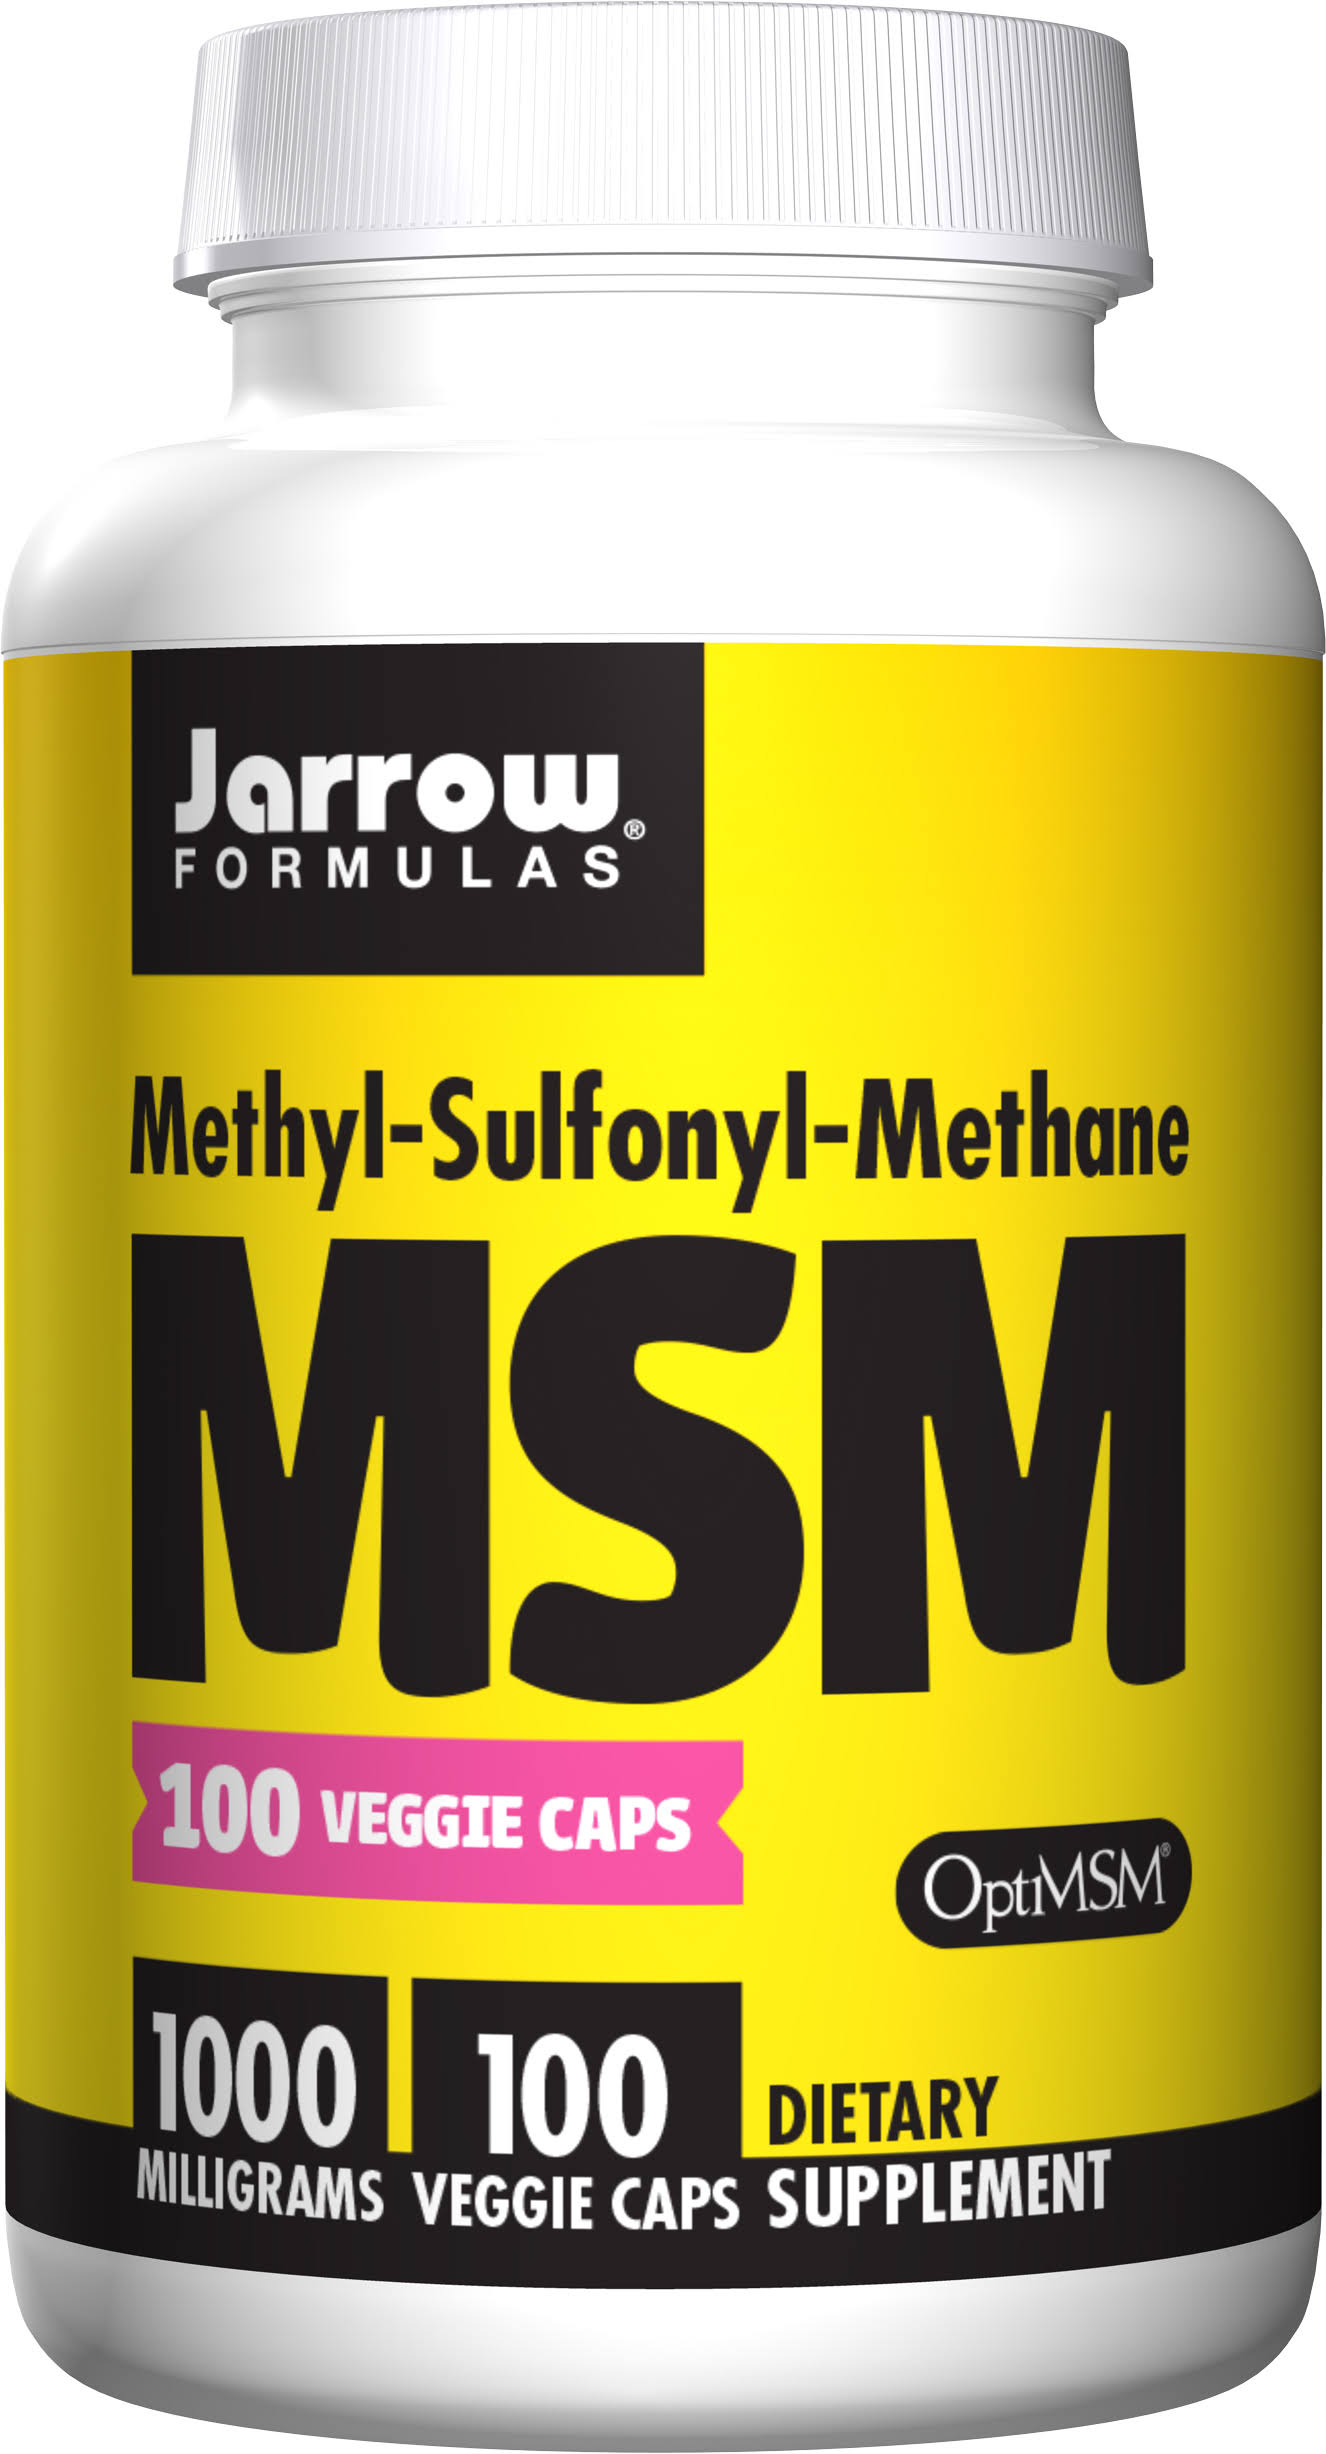 Jarrow Formulas Msm 100mg Dietary Supplement - 100 Capsules